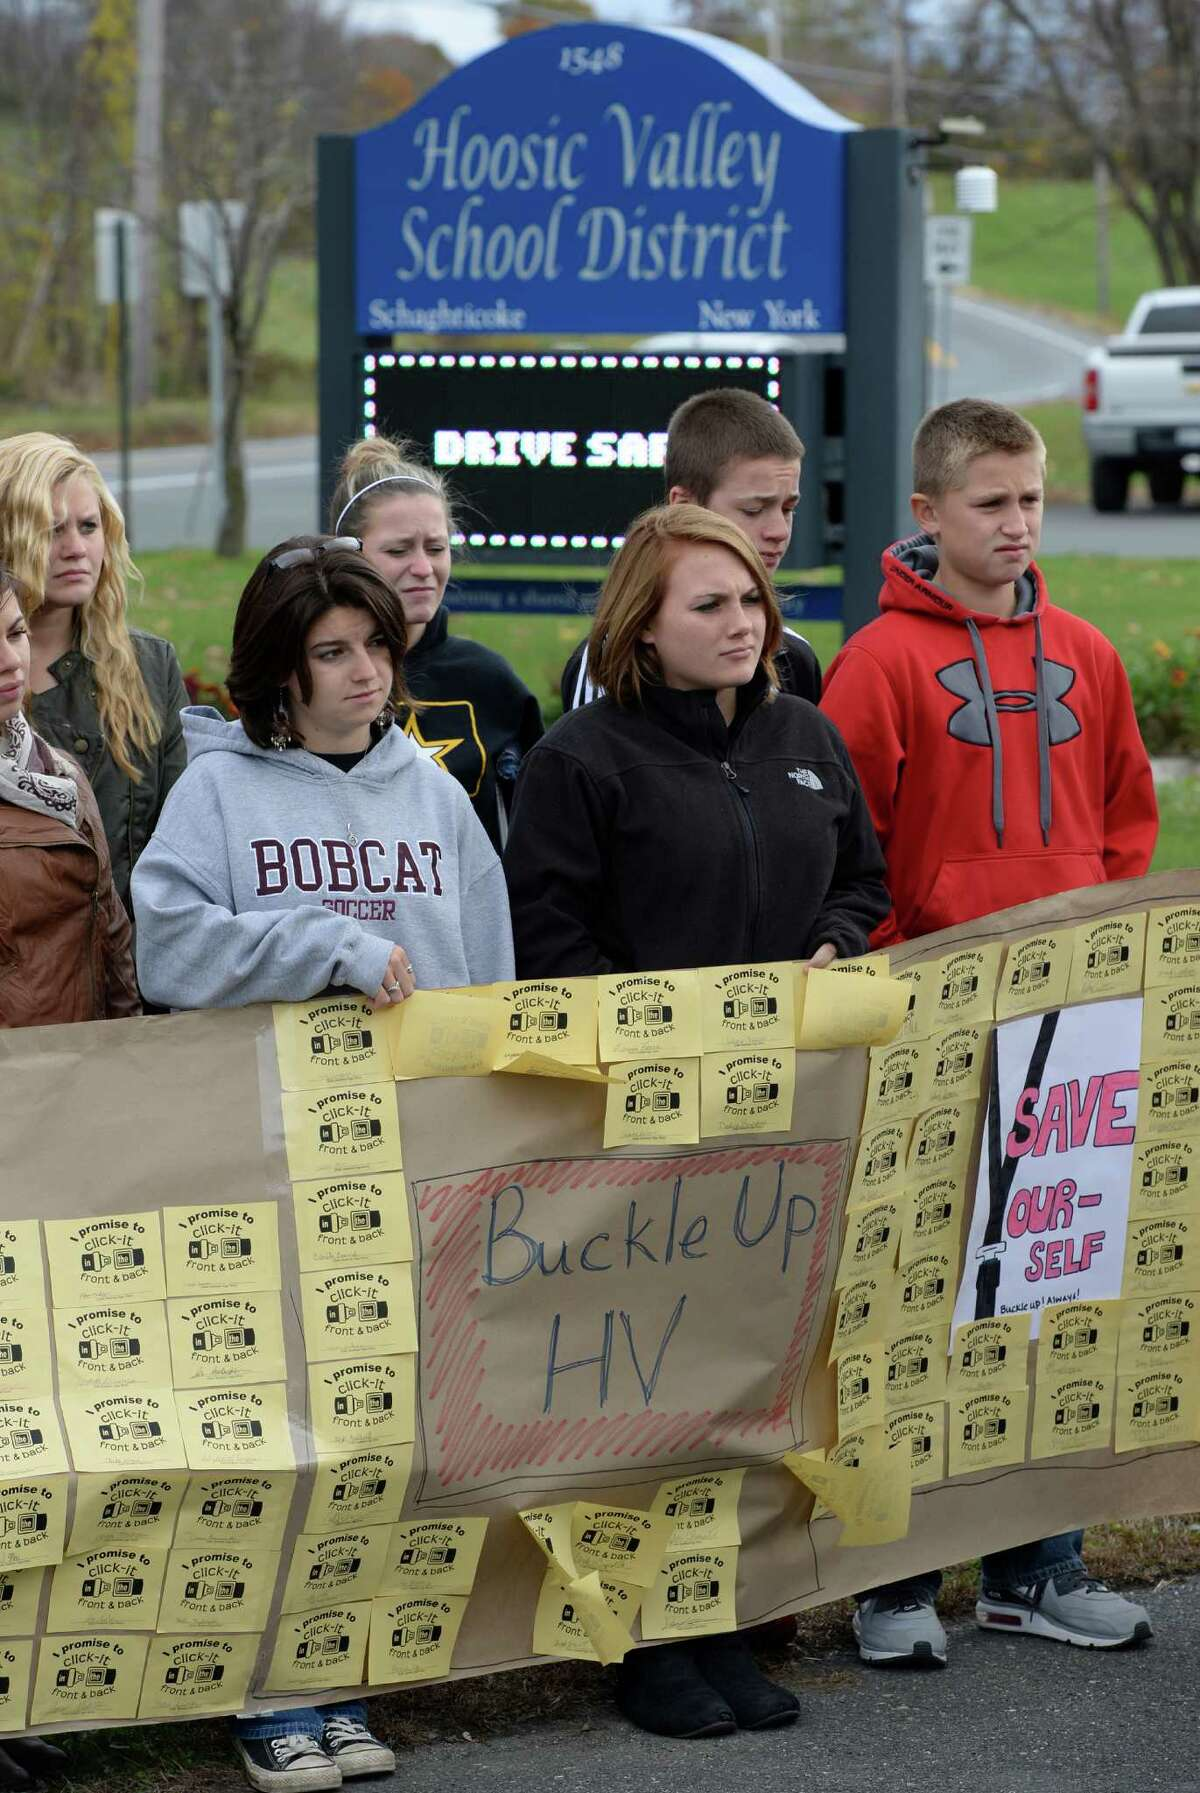 Students from Hoosic Valley High School display a poster which created to promote safe driving Friday morning, Oct. 25, 2013, during a press briefing held by Troop G Major Steven James at the Hoosic Valley High School in Schaghticoke, N.Y. (Skip Dickstein / Times Union)